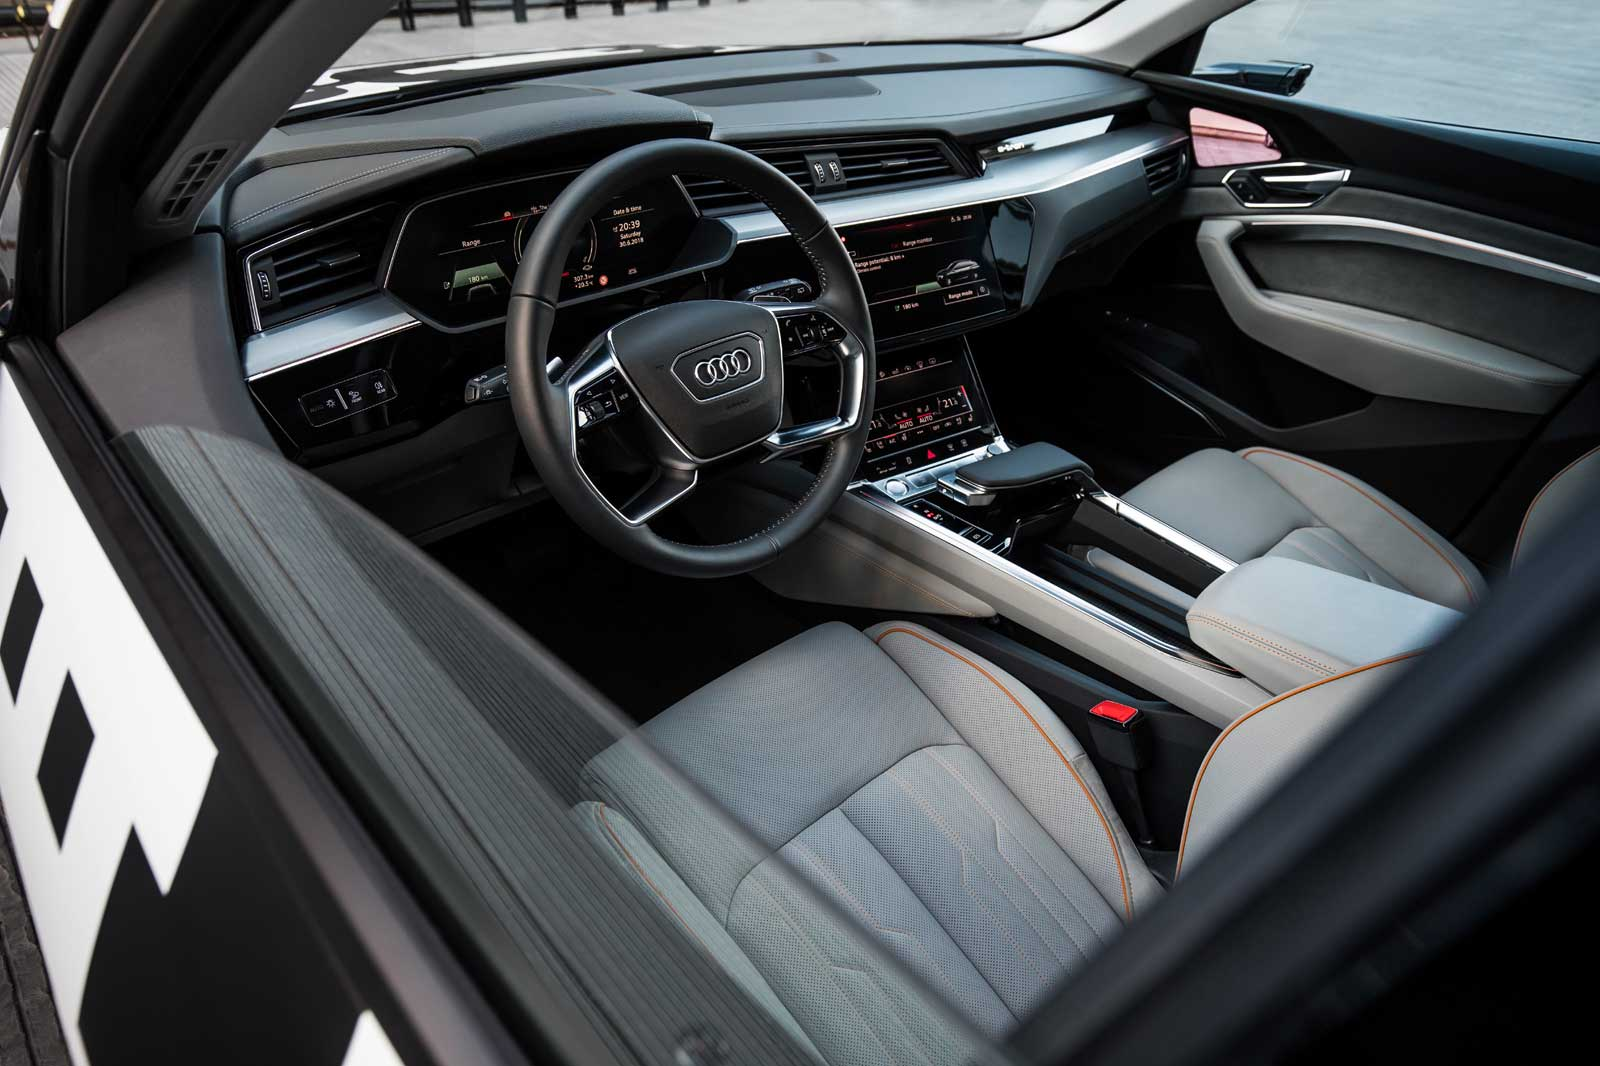 Audi shows off its electric SUV's screen-filled interior